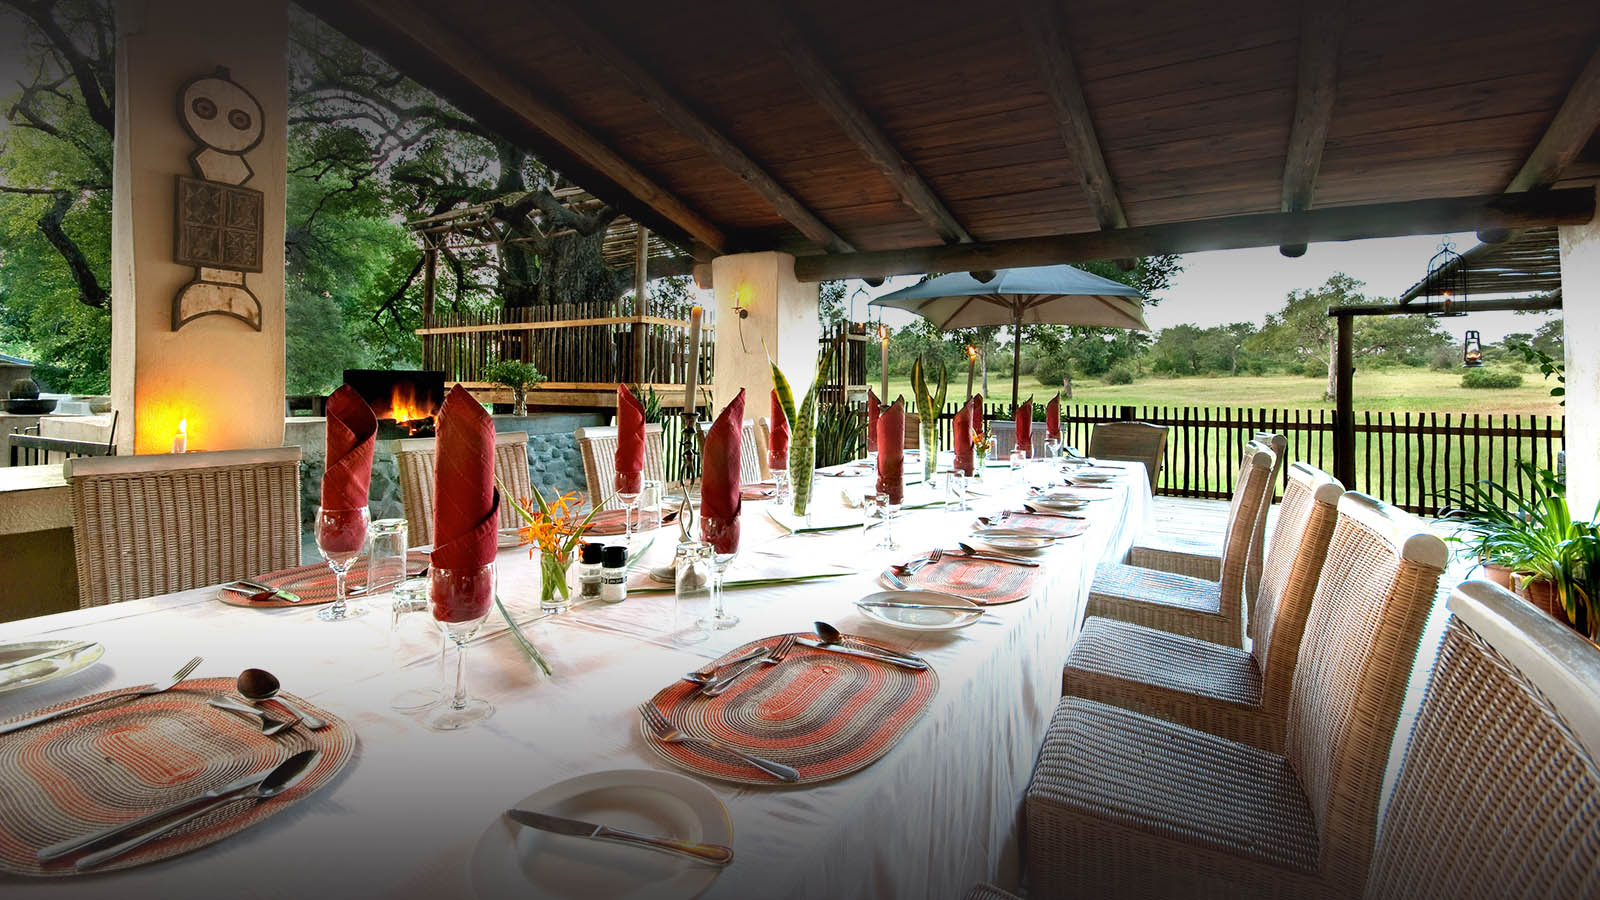 notten's bush camp greater-kruger-lodges-zambia-in-style-south-africa-sabi-sands-exclusive-lodge-dining